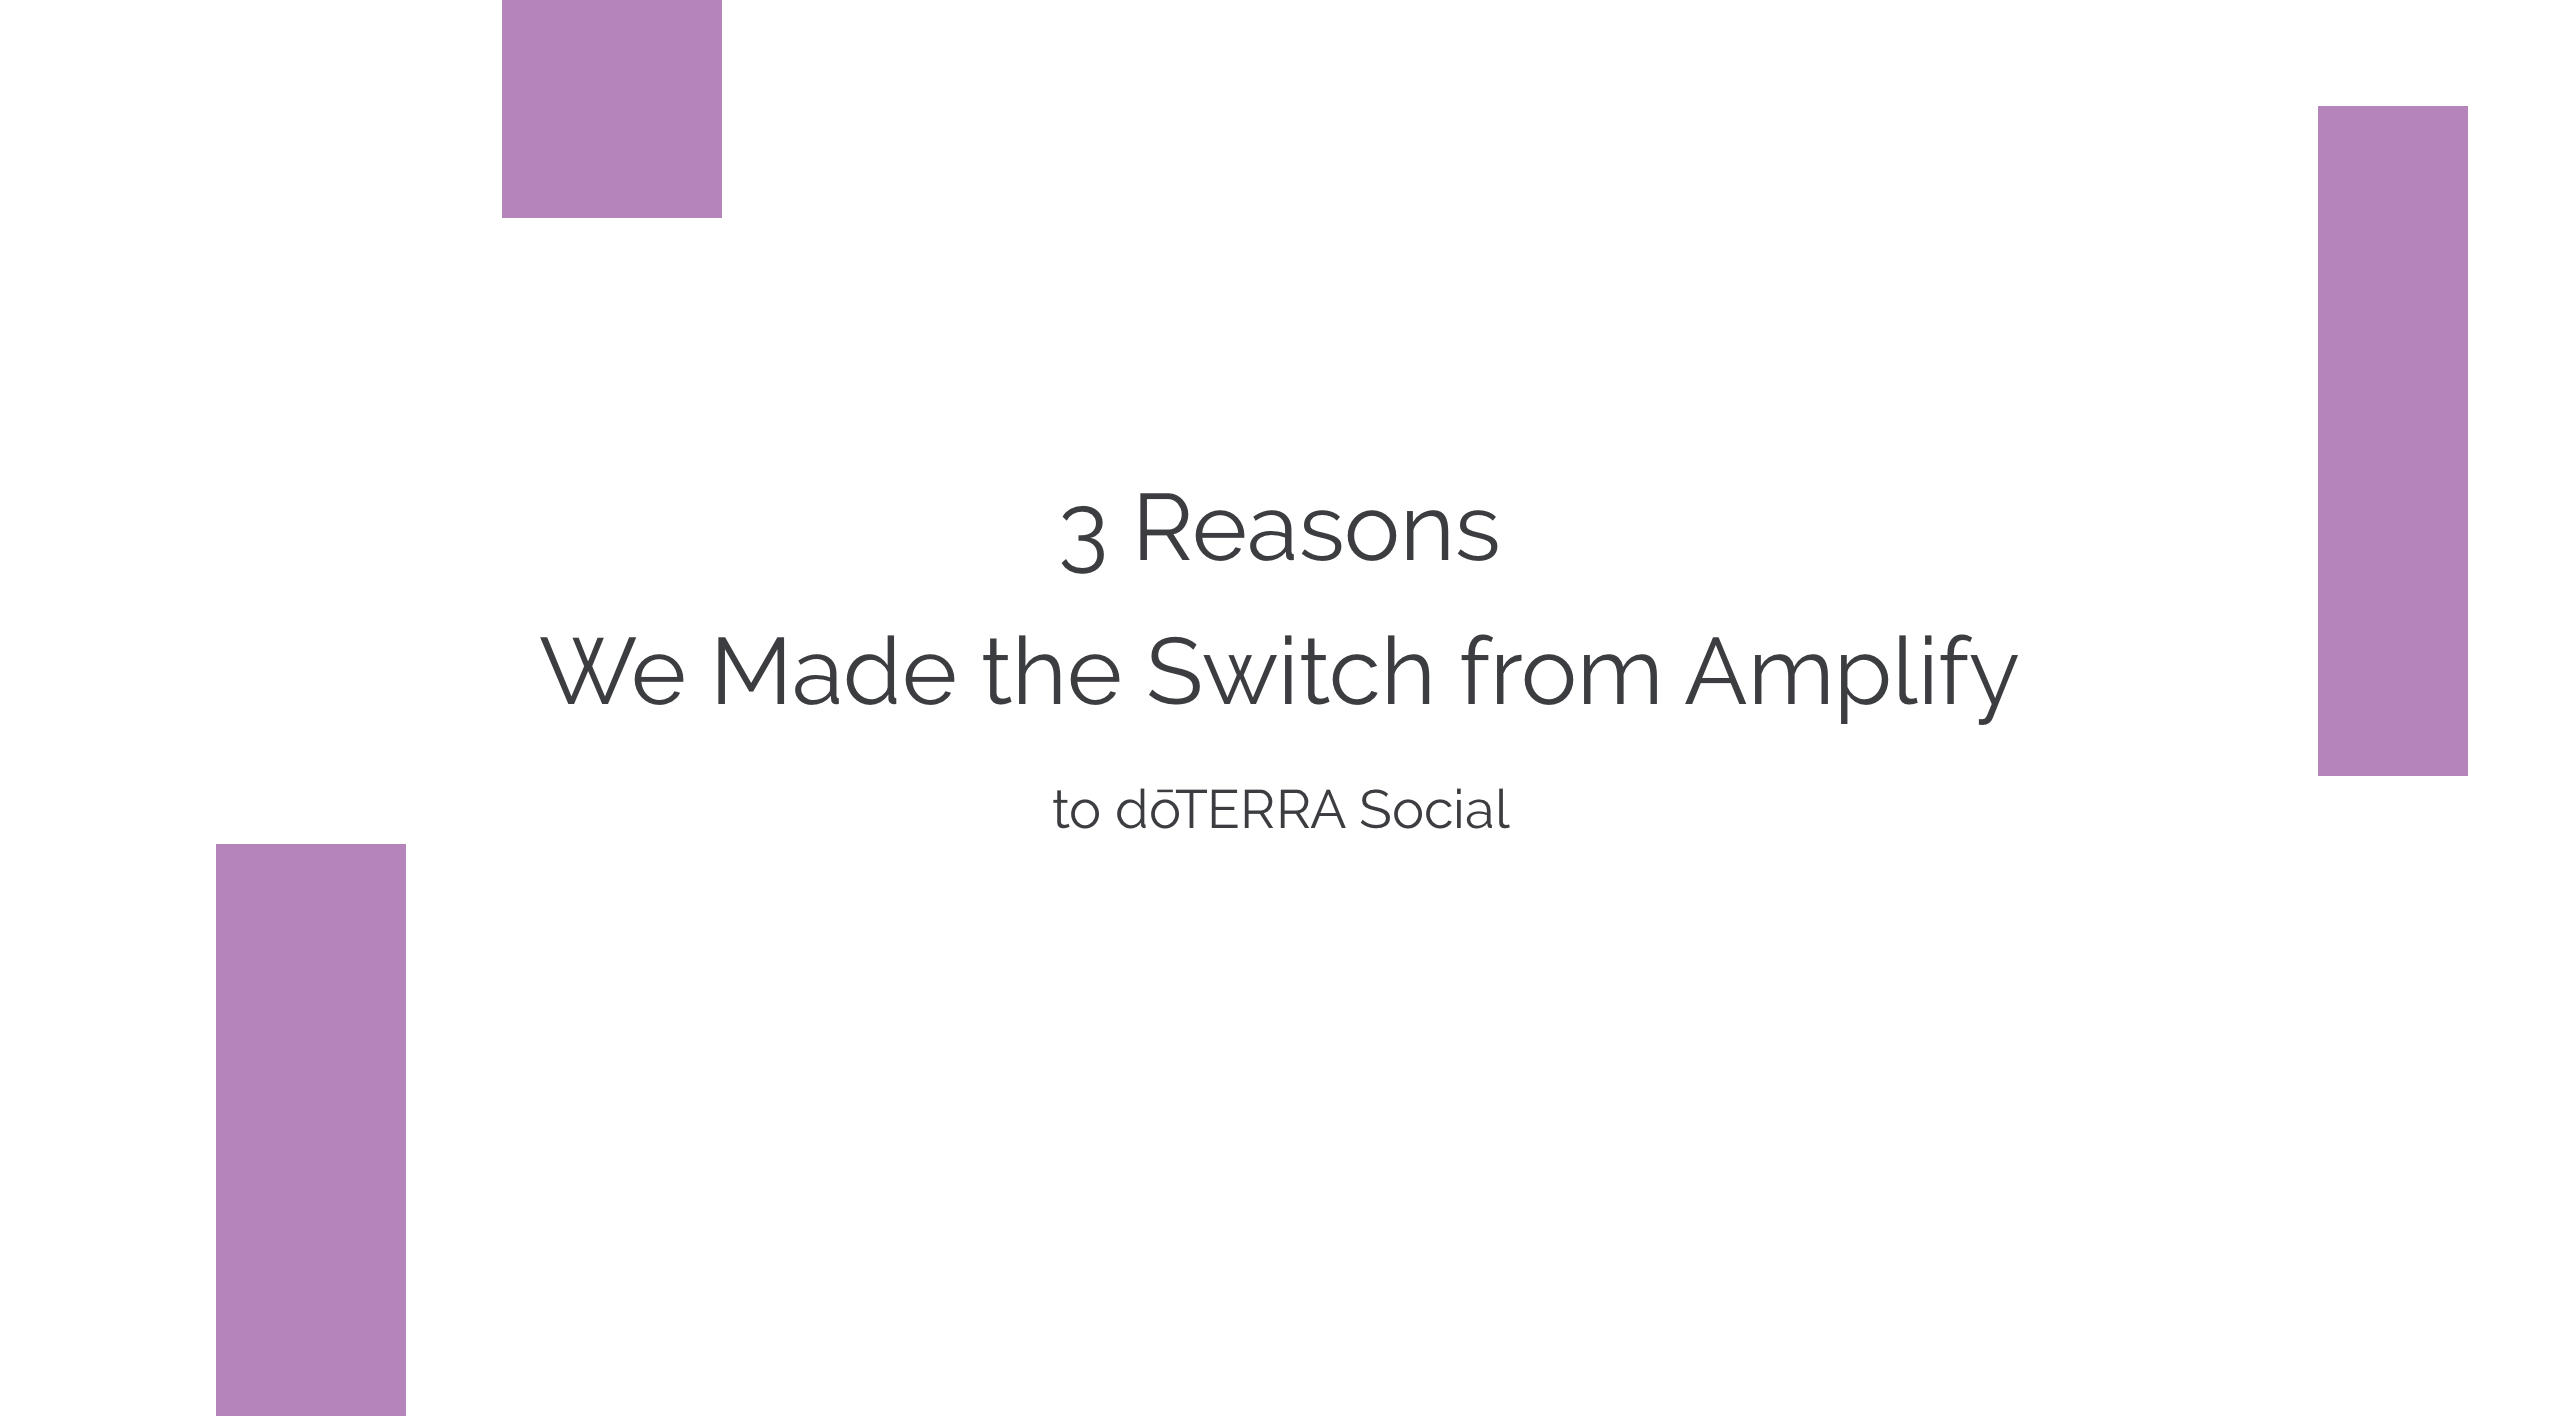 3 Reasons We Made the Switch from Amplify to dōTERRA Social